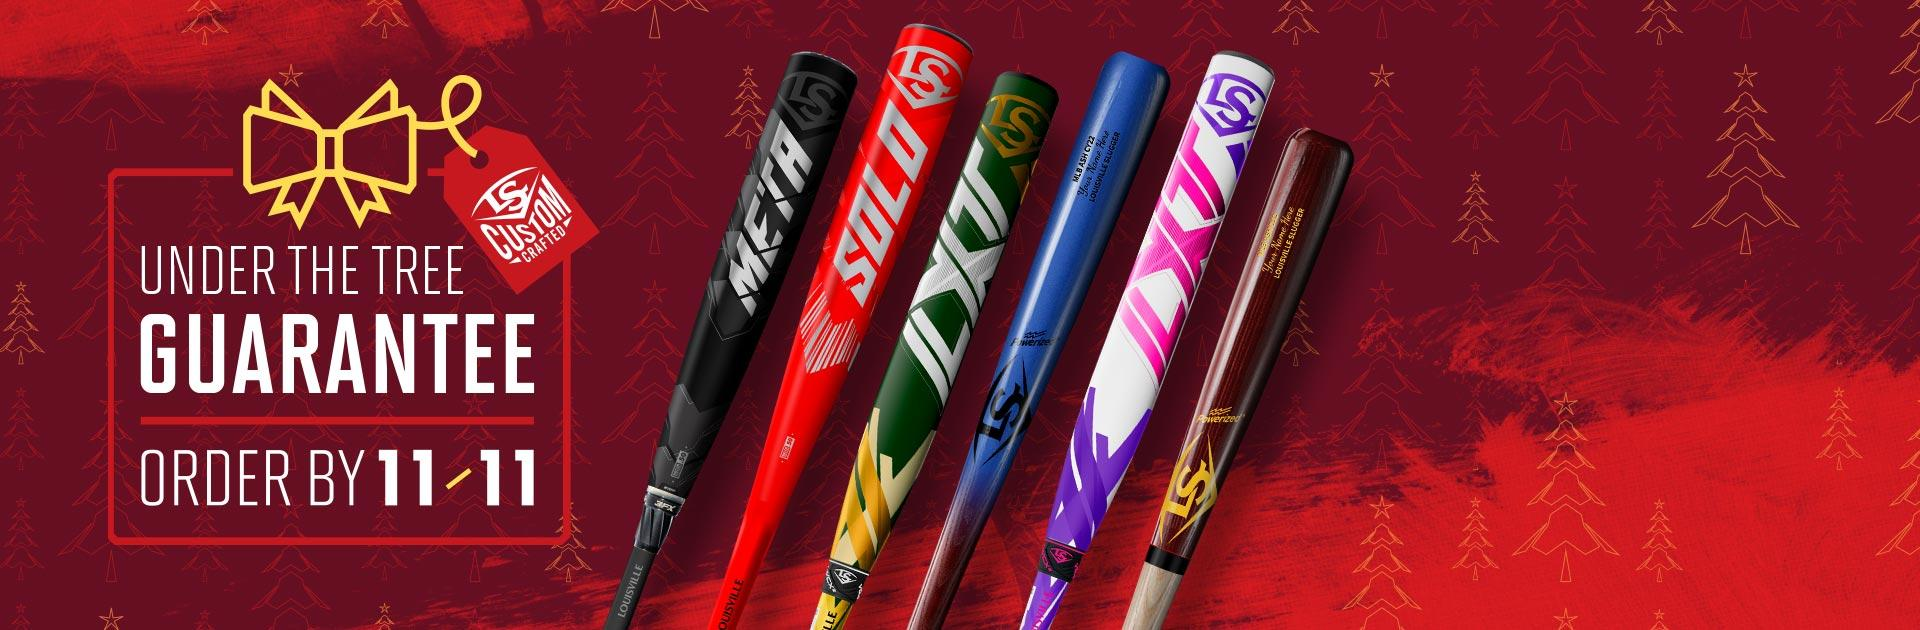 Order Slugger Custom bats by November 11th for guaranteed delivery by Christmas